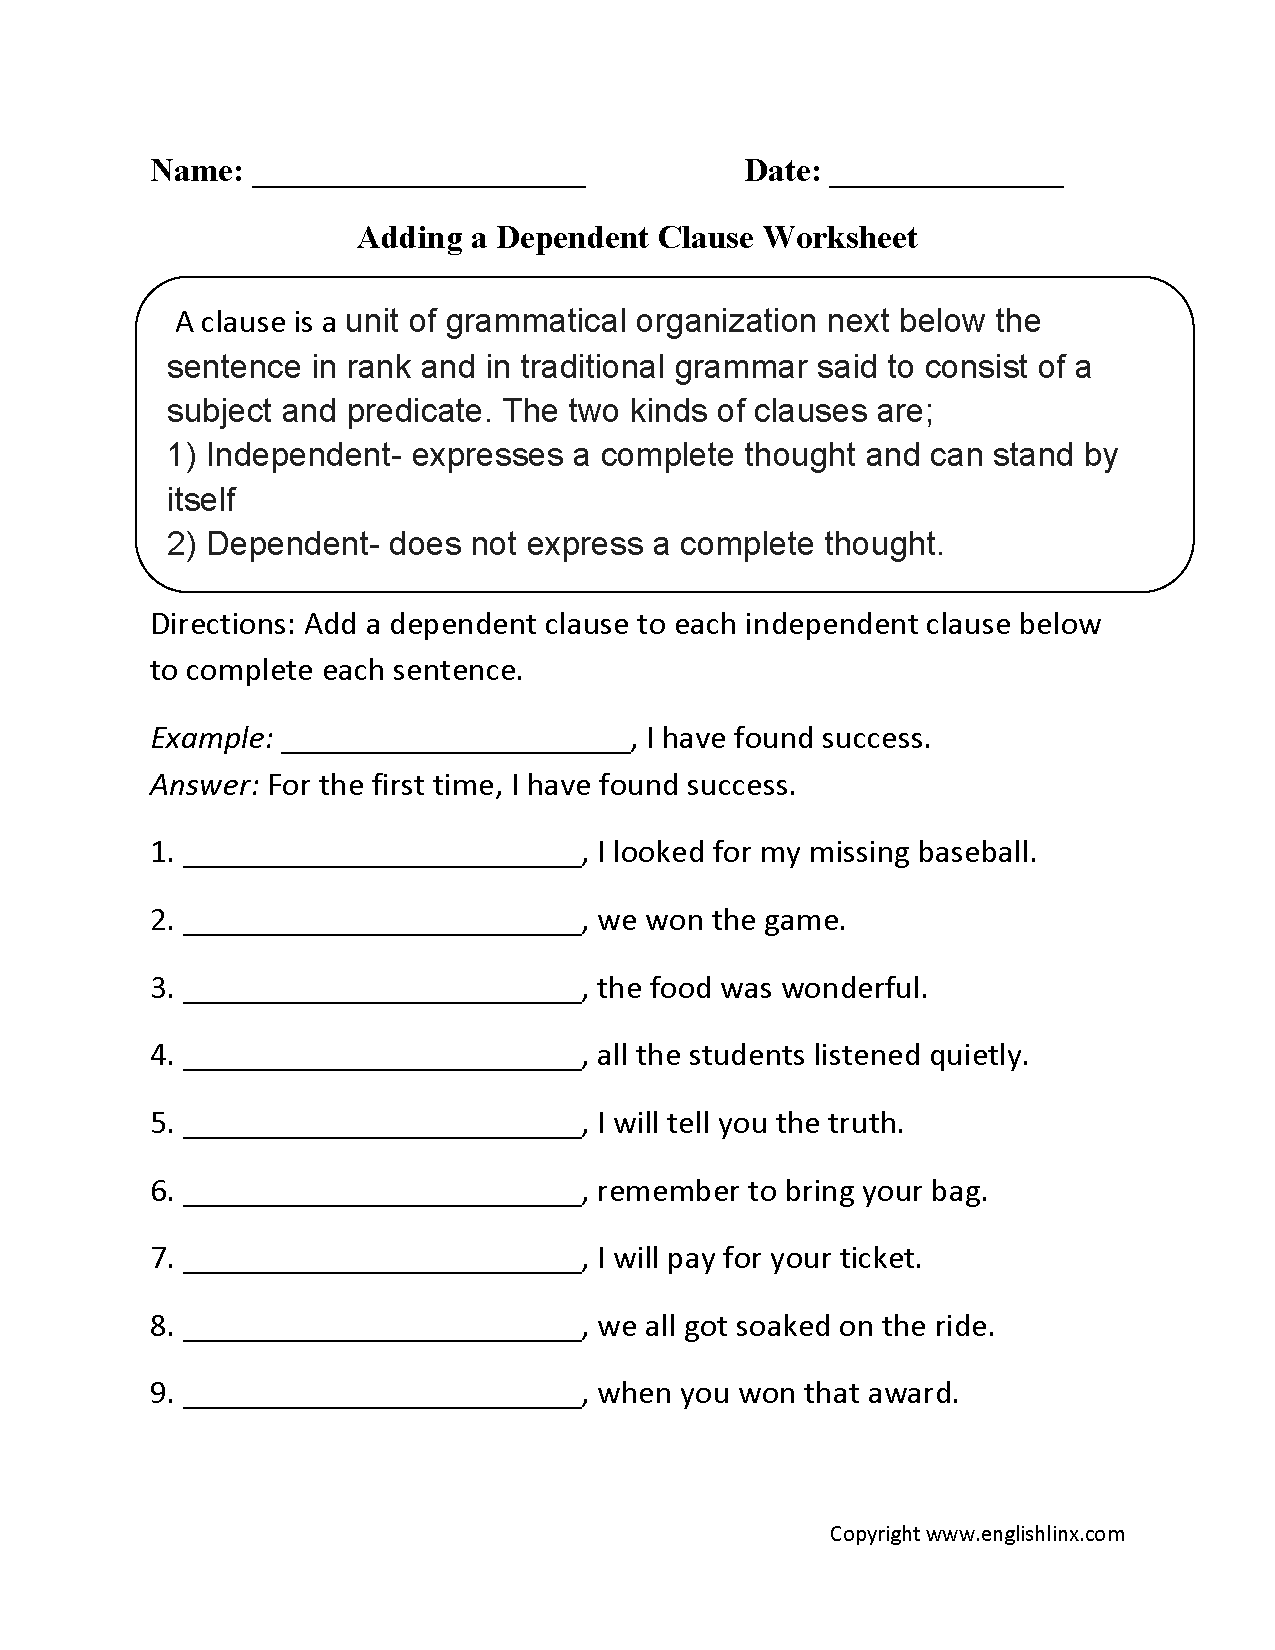 Englishlinx Clauses Worksheets